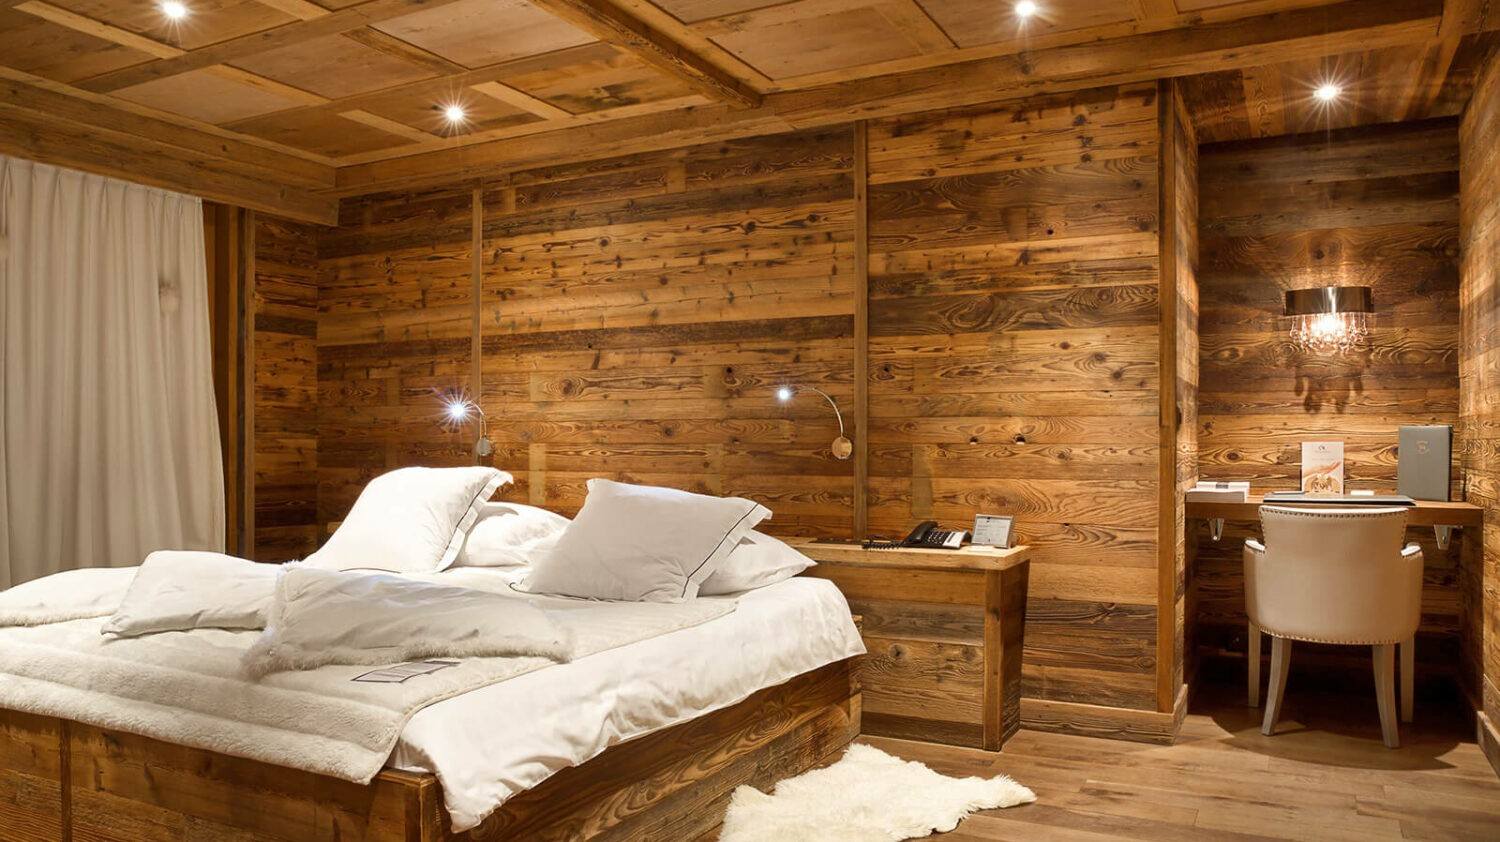 hostellerie-du-pas-de-l'ours-wooden-bedroom